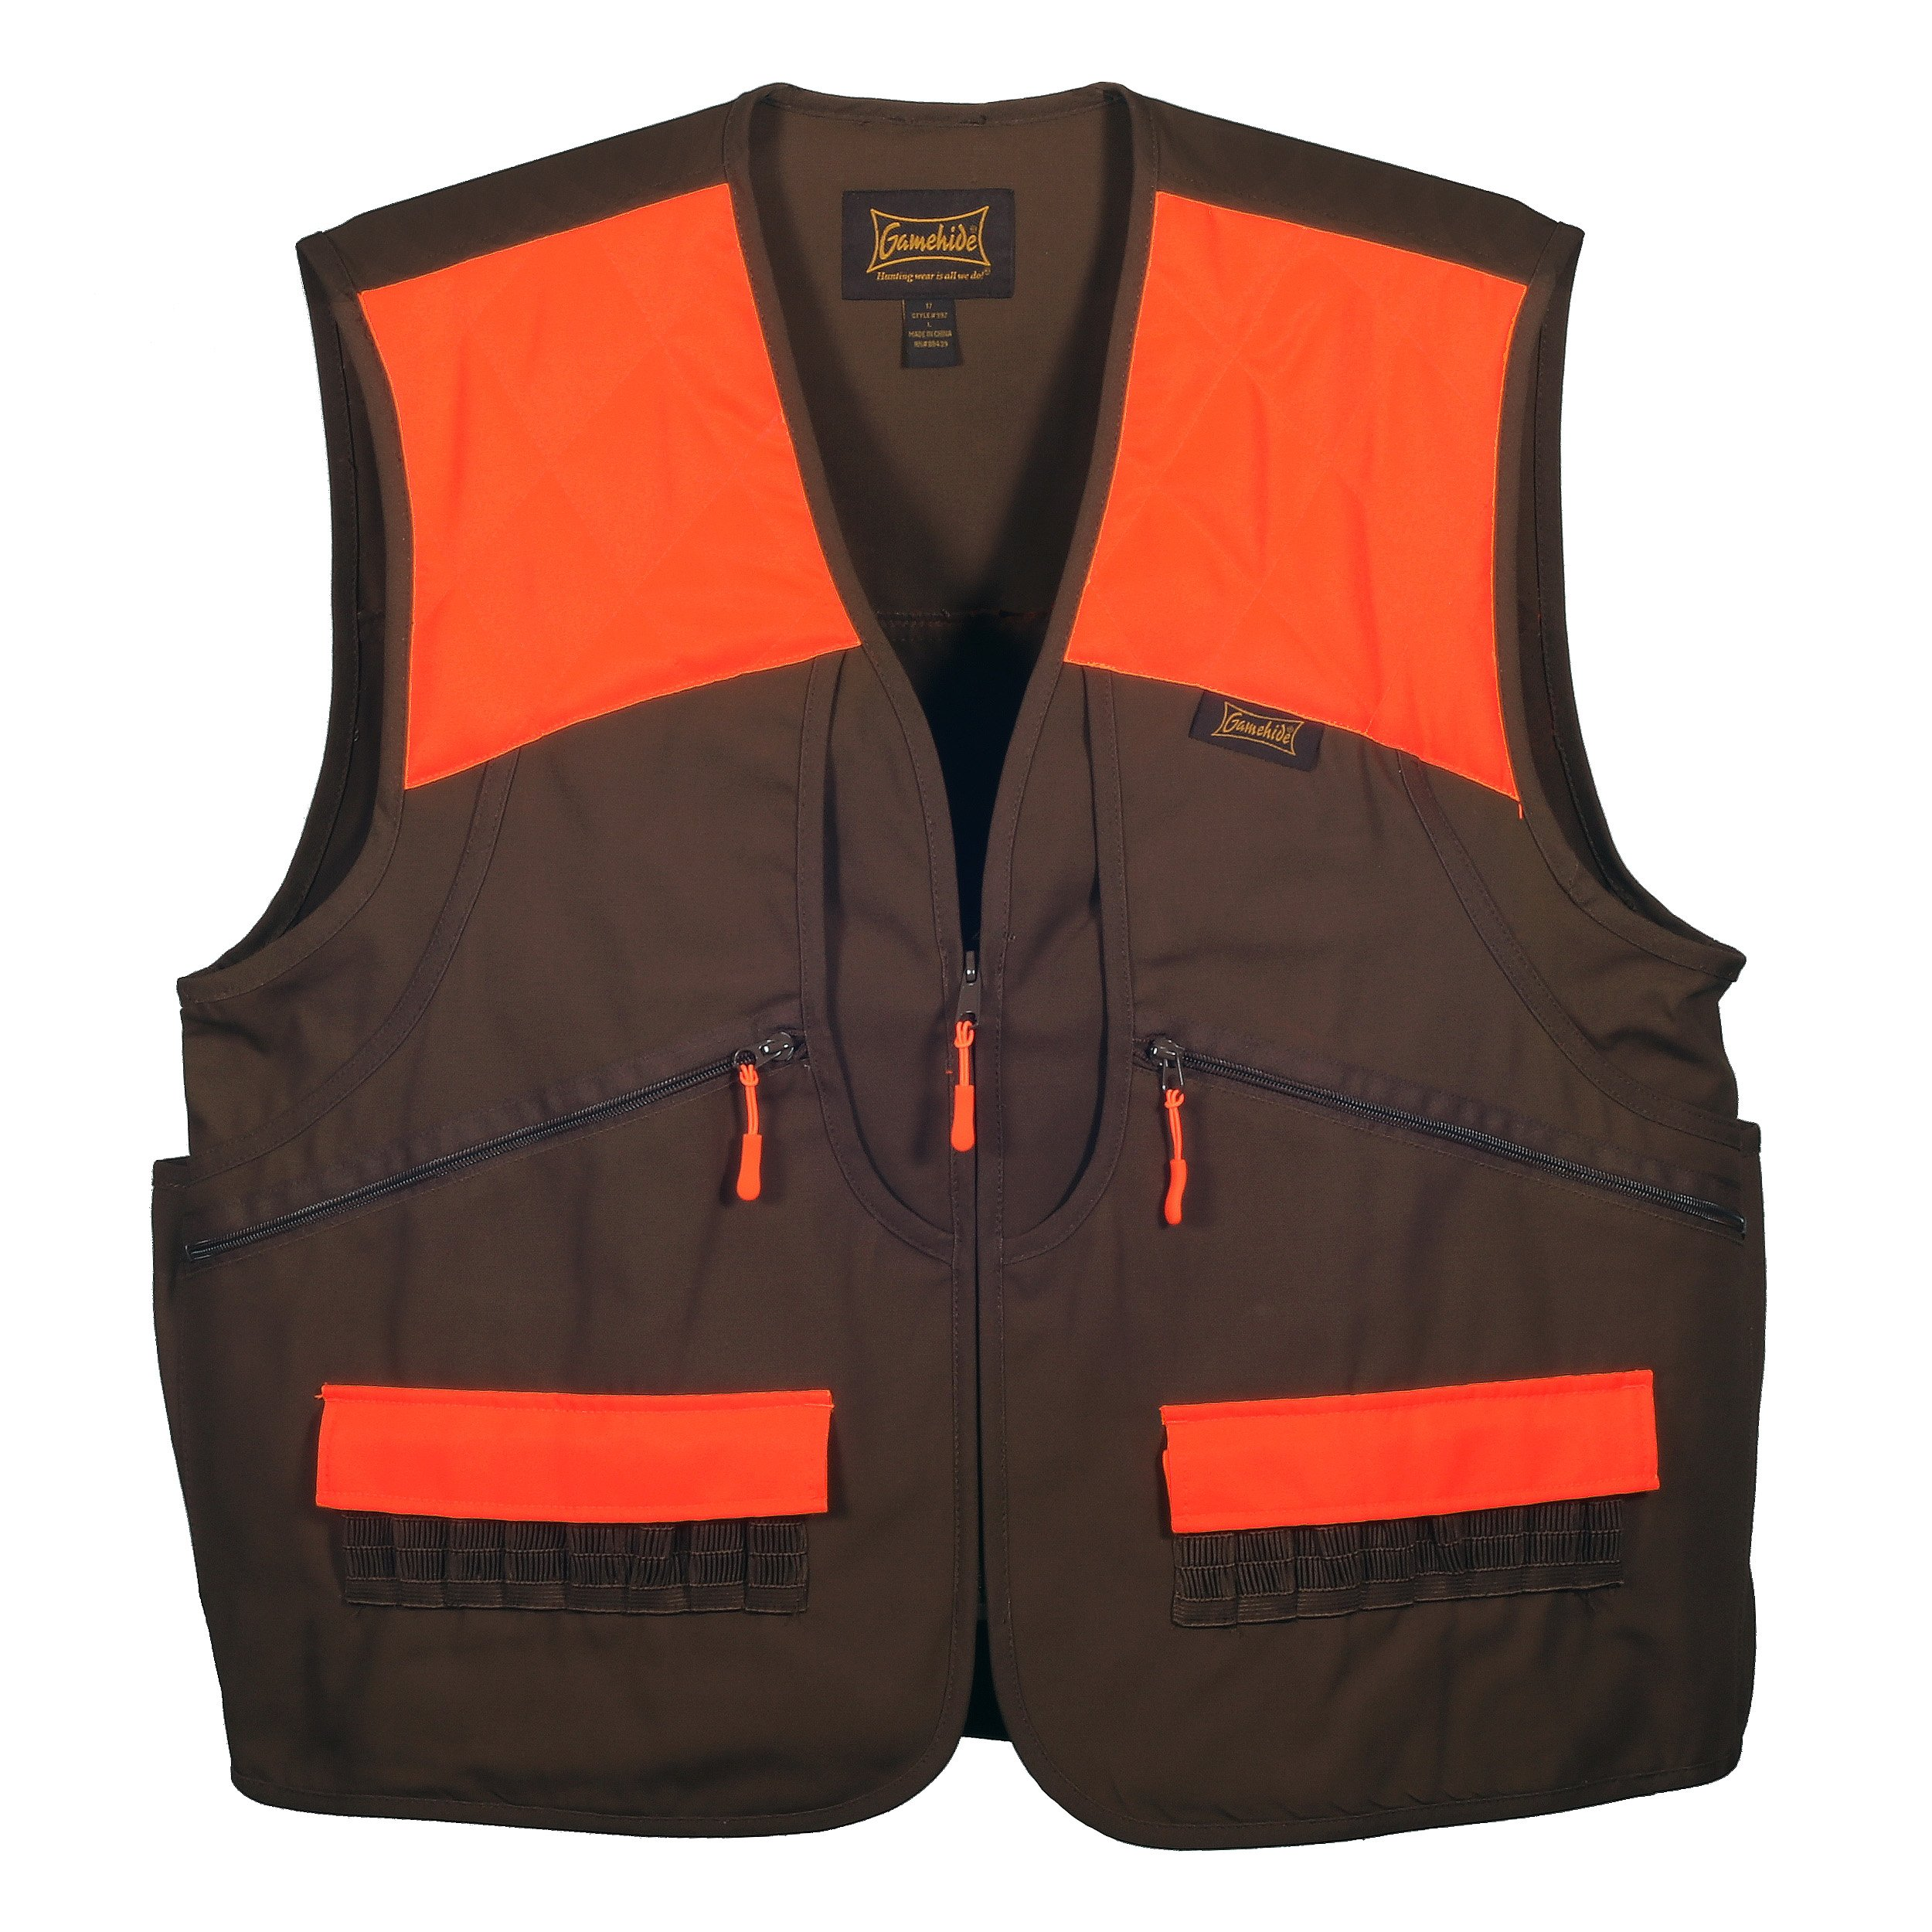 Gamehide Switchgrass Upland Field Bird Hunting Vest (Chestnut Brown/Orange, 2X-Large) by Gamehide